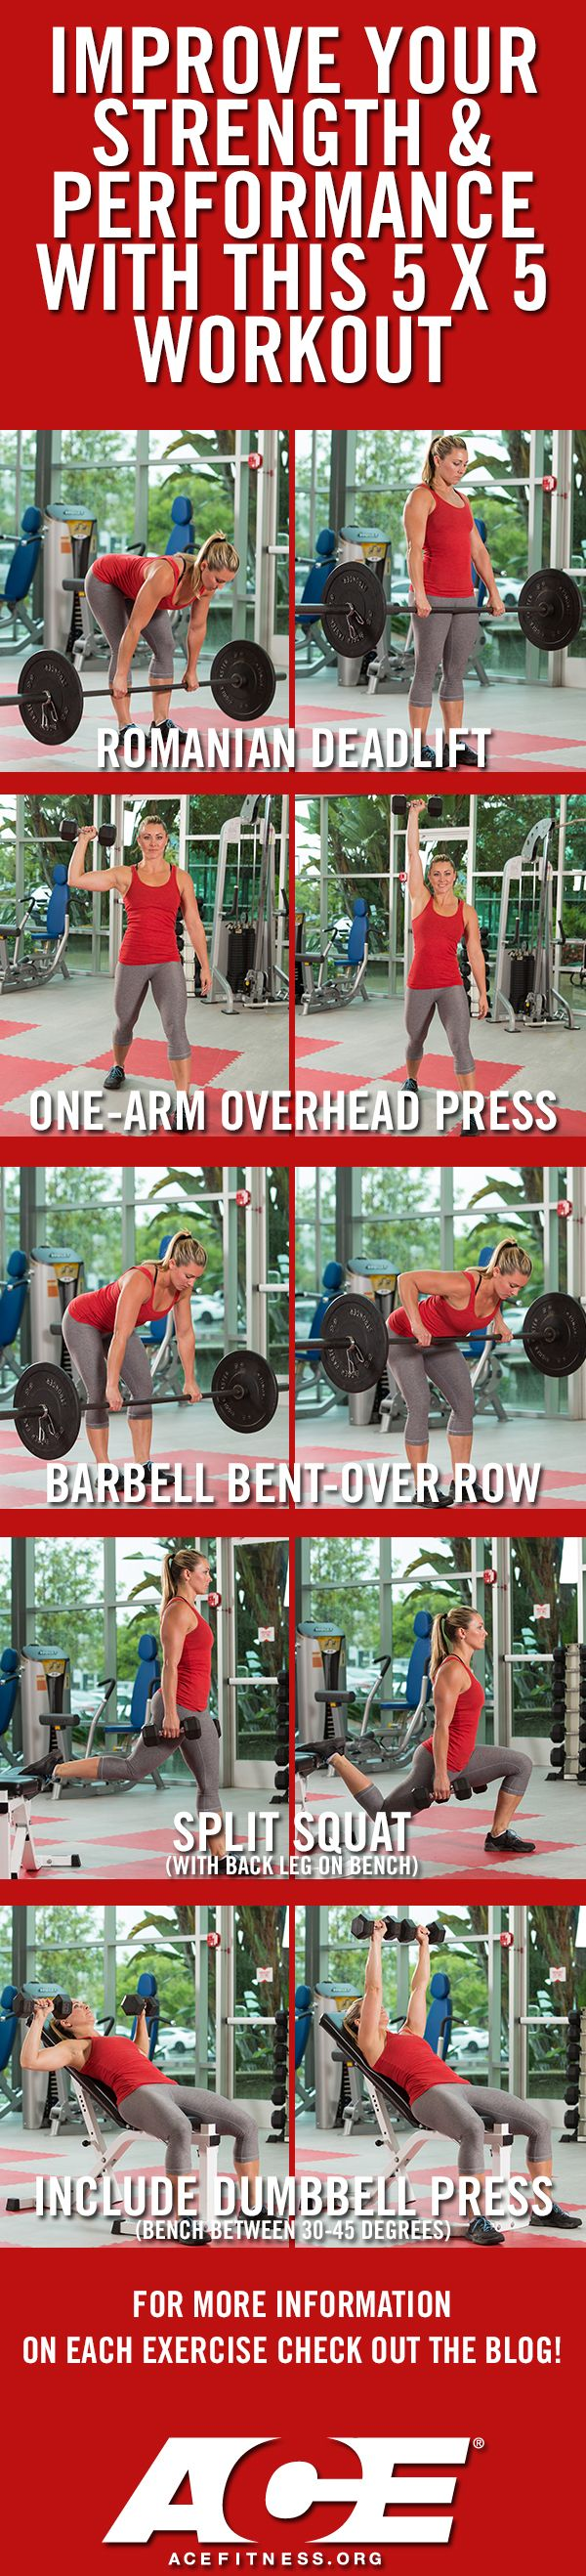 best Powerlifting images on Pinterest  Powerlifting Programming